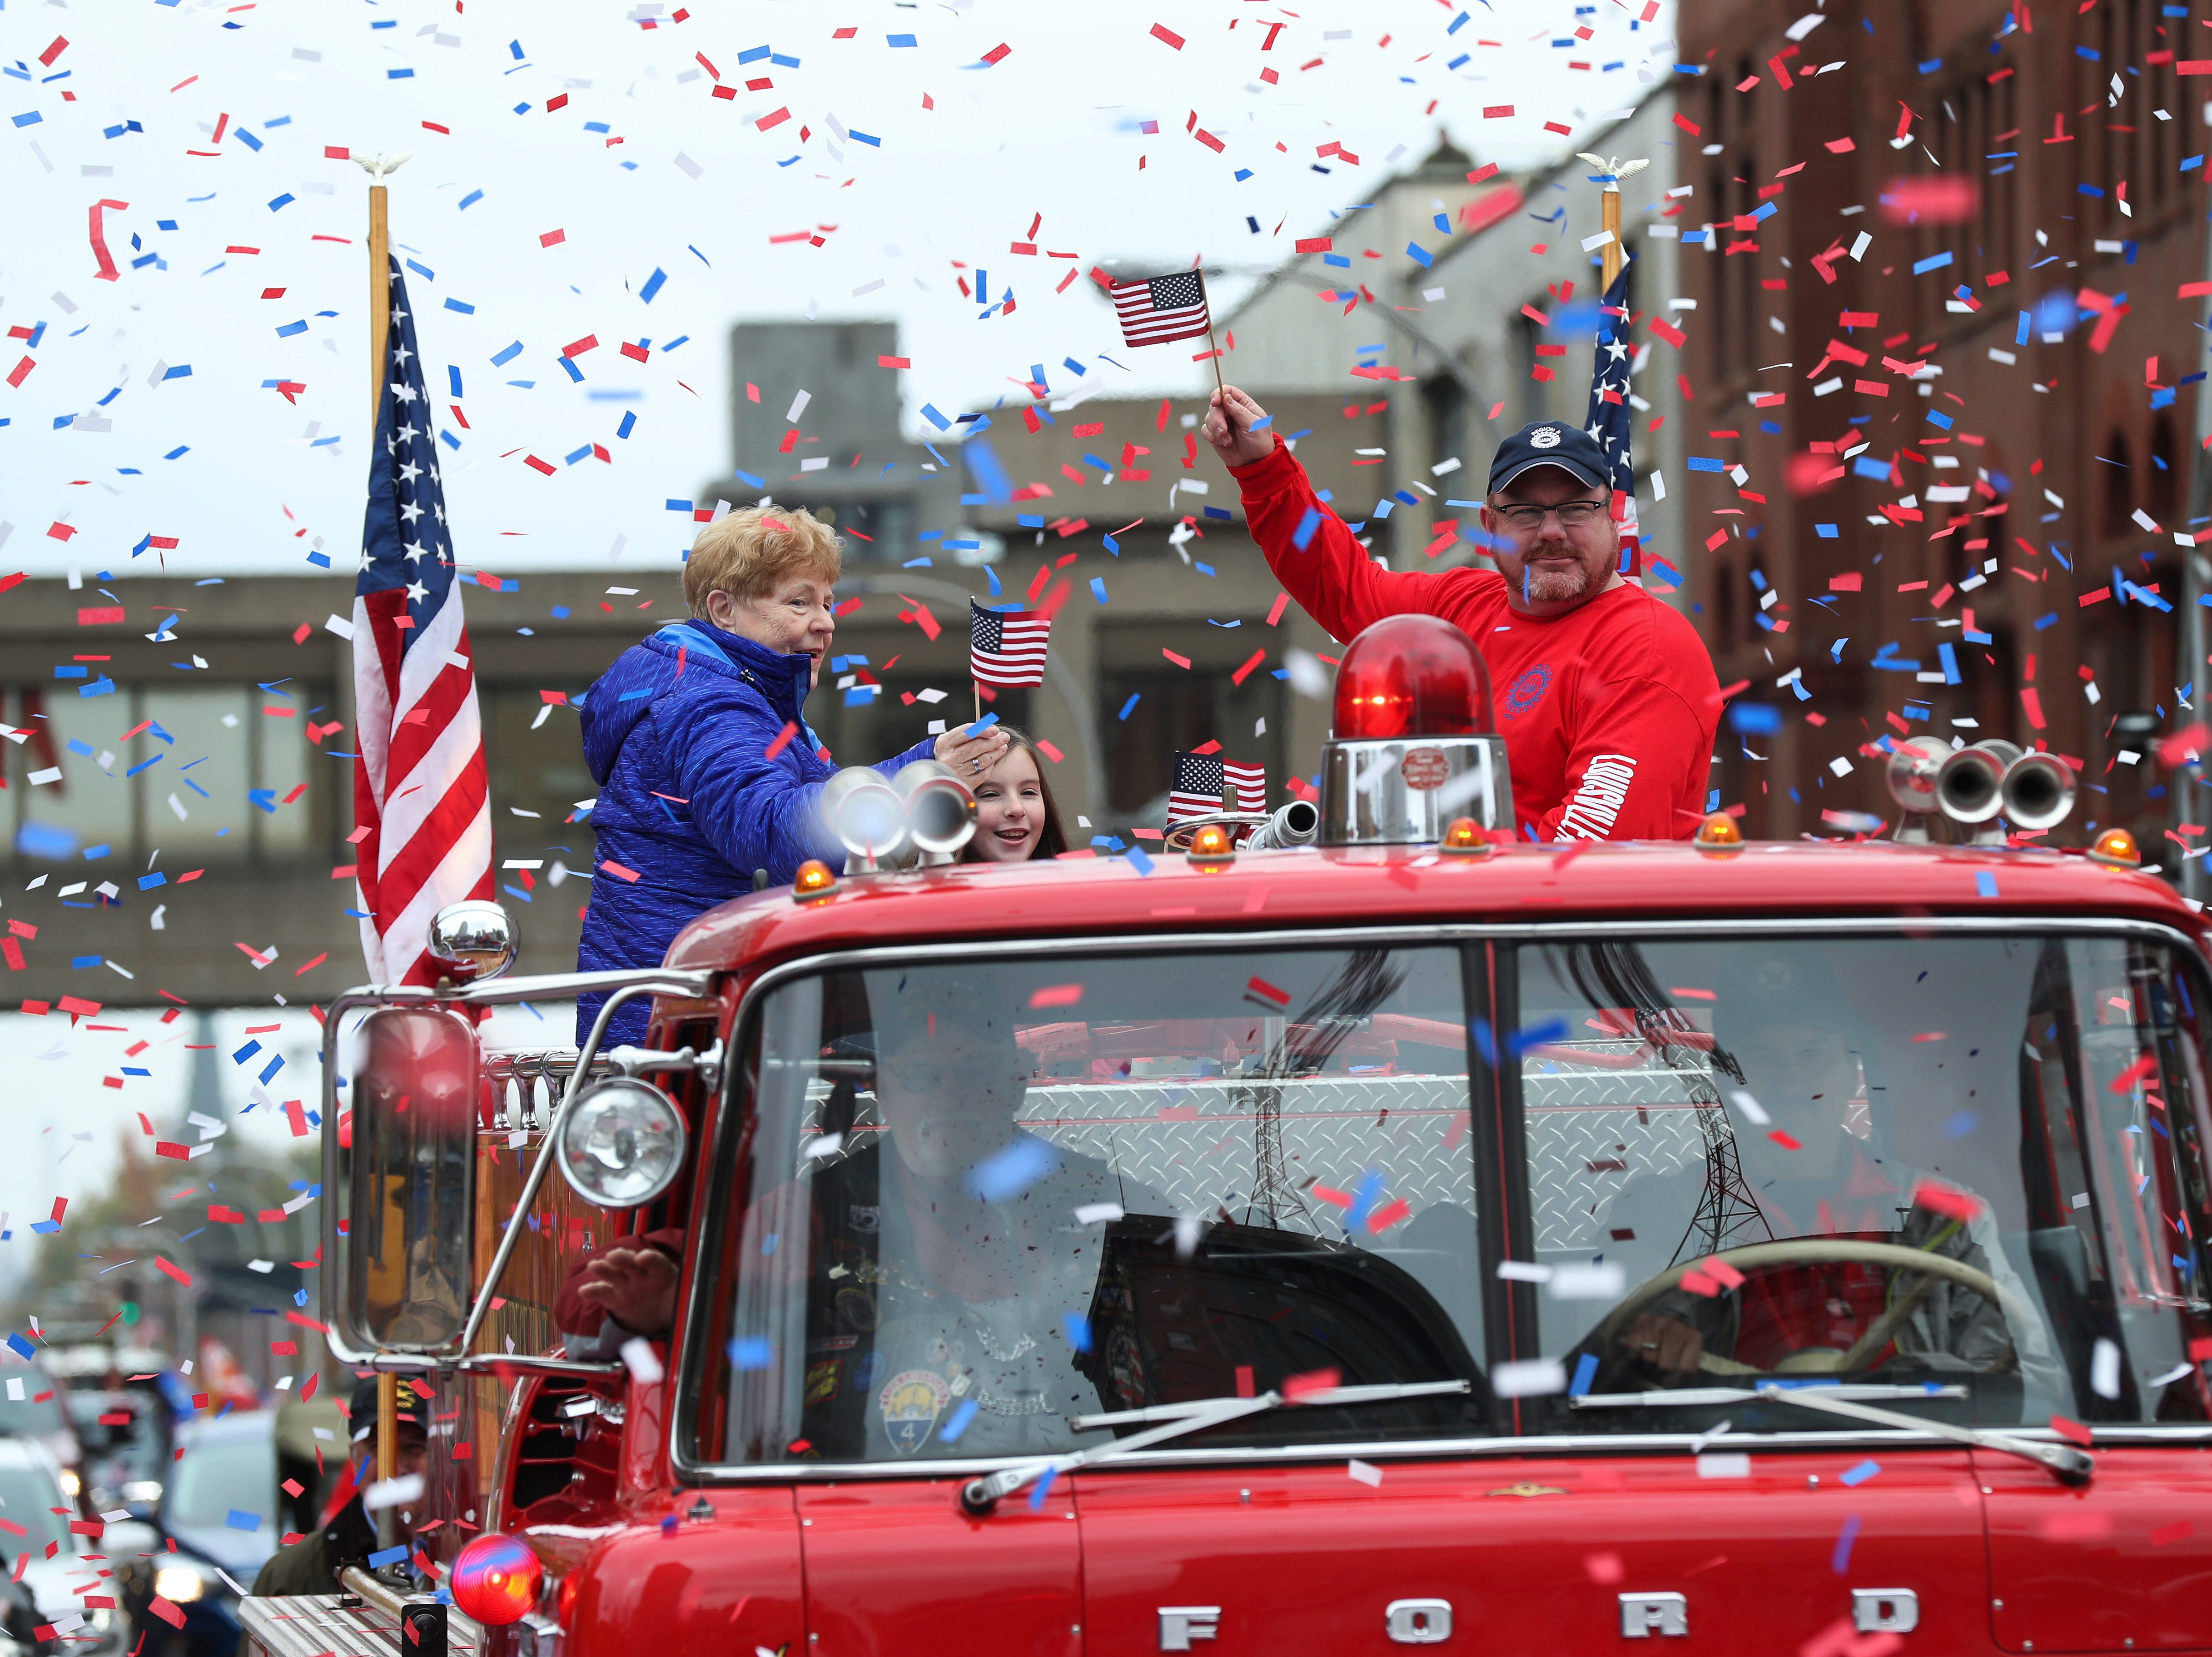 Participants were covered in confetti as they made their way down Jefferson Street during the Veterans Day Parade.  Nov. 9, 2018